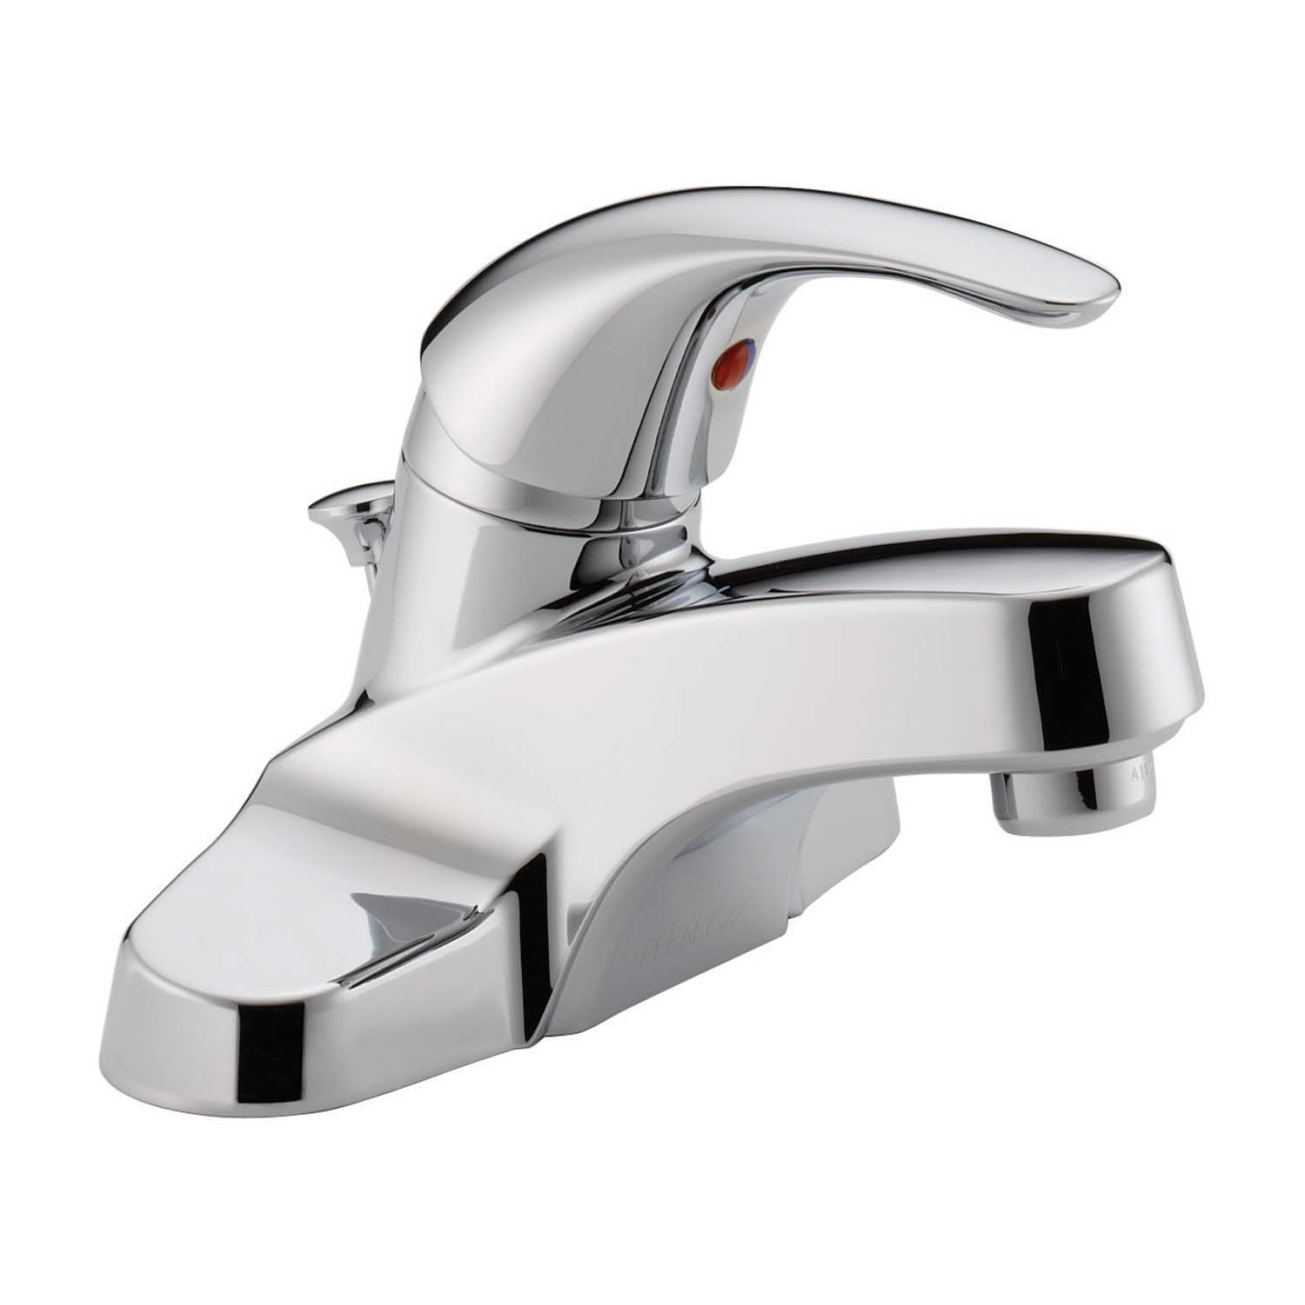 Ideas, different types of bathroom sink faucets different types of bathroom sink faucets bathroom faucets and sink faucets at ace hardware 1305 x 1305  .